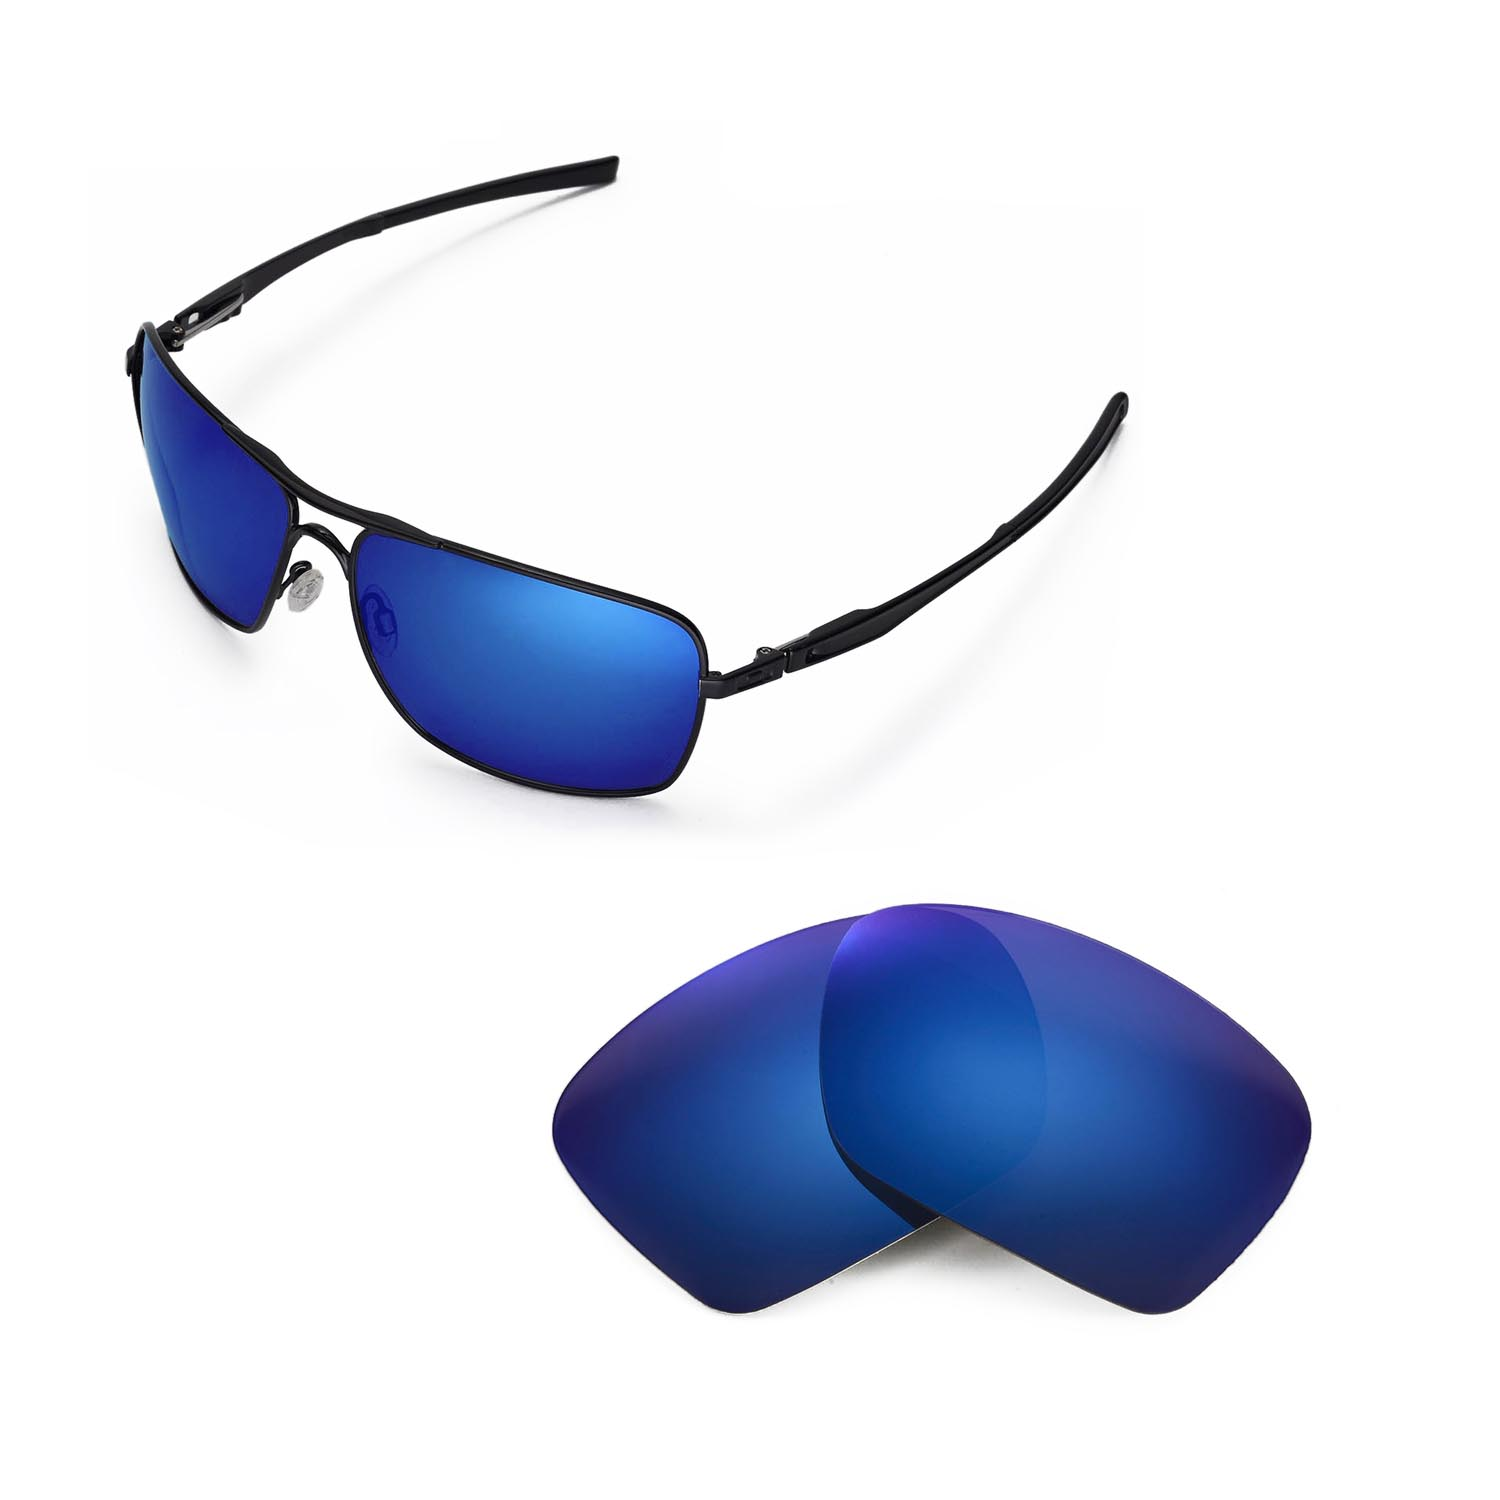 a05f26c924 Details about New Walleva Polarized Ice Blue Replacement Lenses For Oakley  Plaintiff Squared